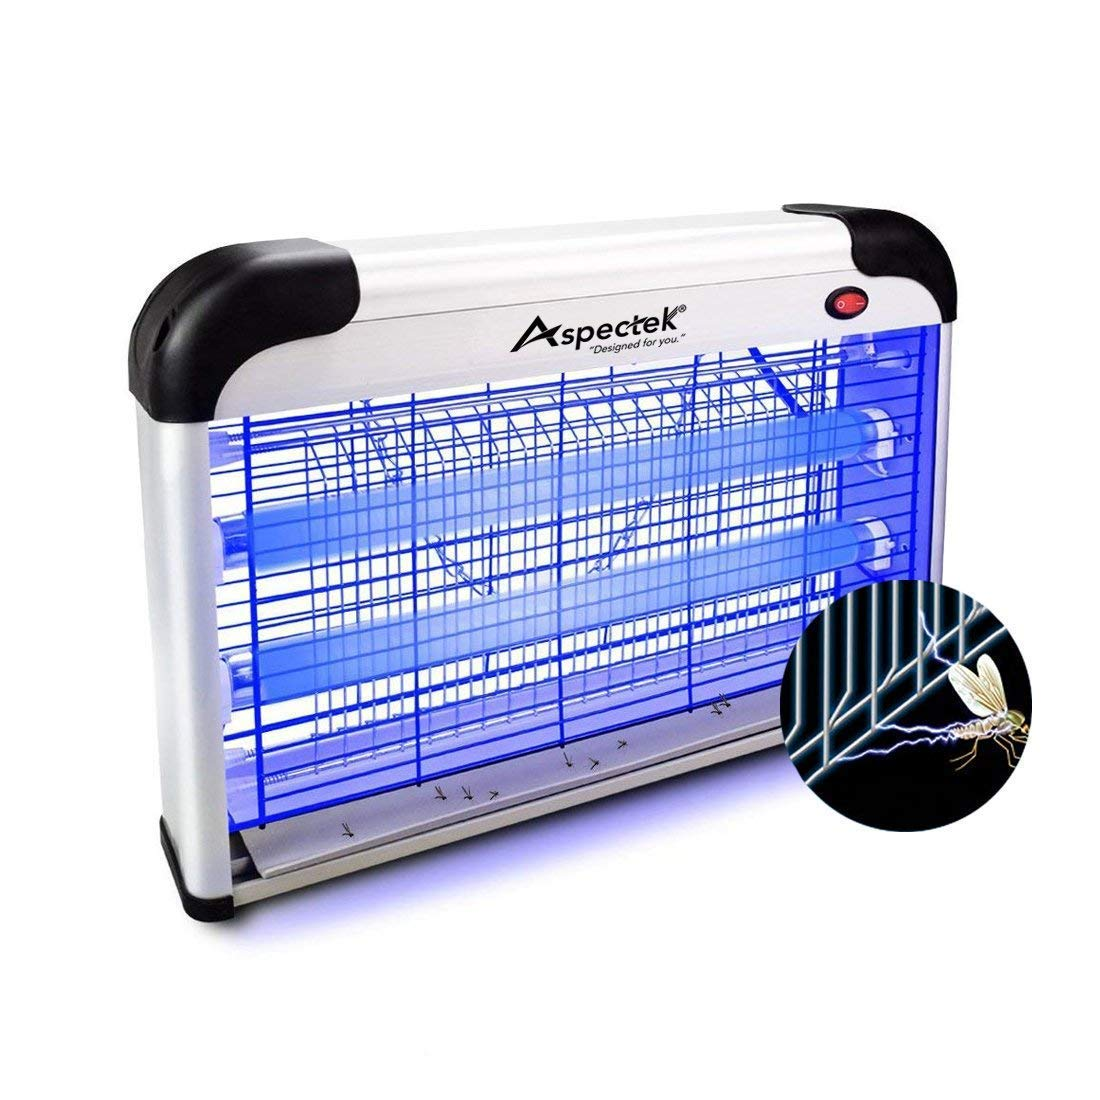 Aspectek Upgraded 20W Electronic Bug Zapper, Insect Killer - Mosquito, Fly, Moth, Wasp, Beetle & Other pests Killer Indoor Residential & Commercial (20W Home Bug Zapper)